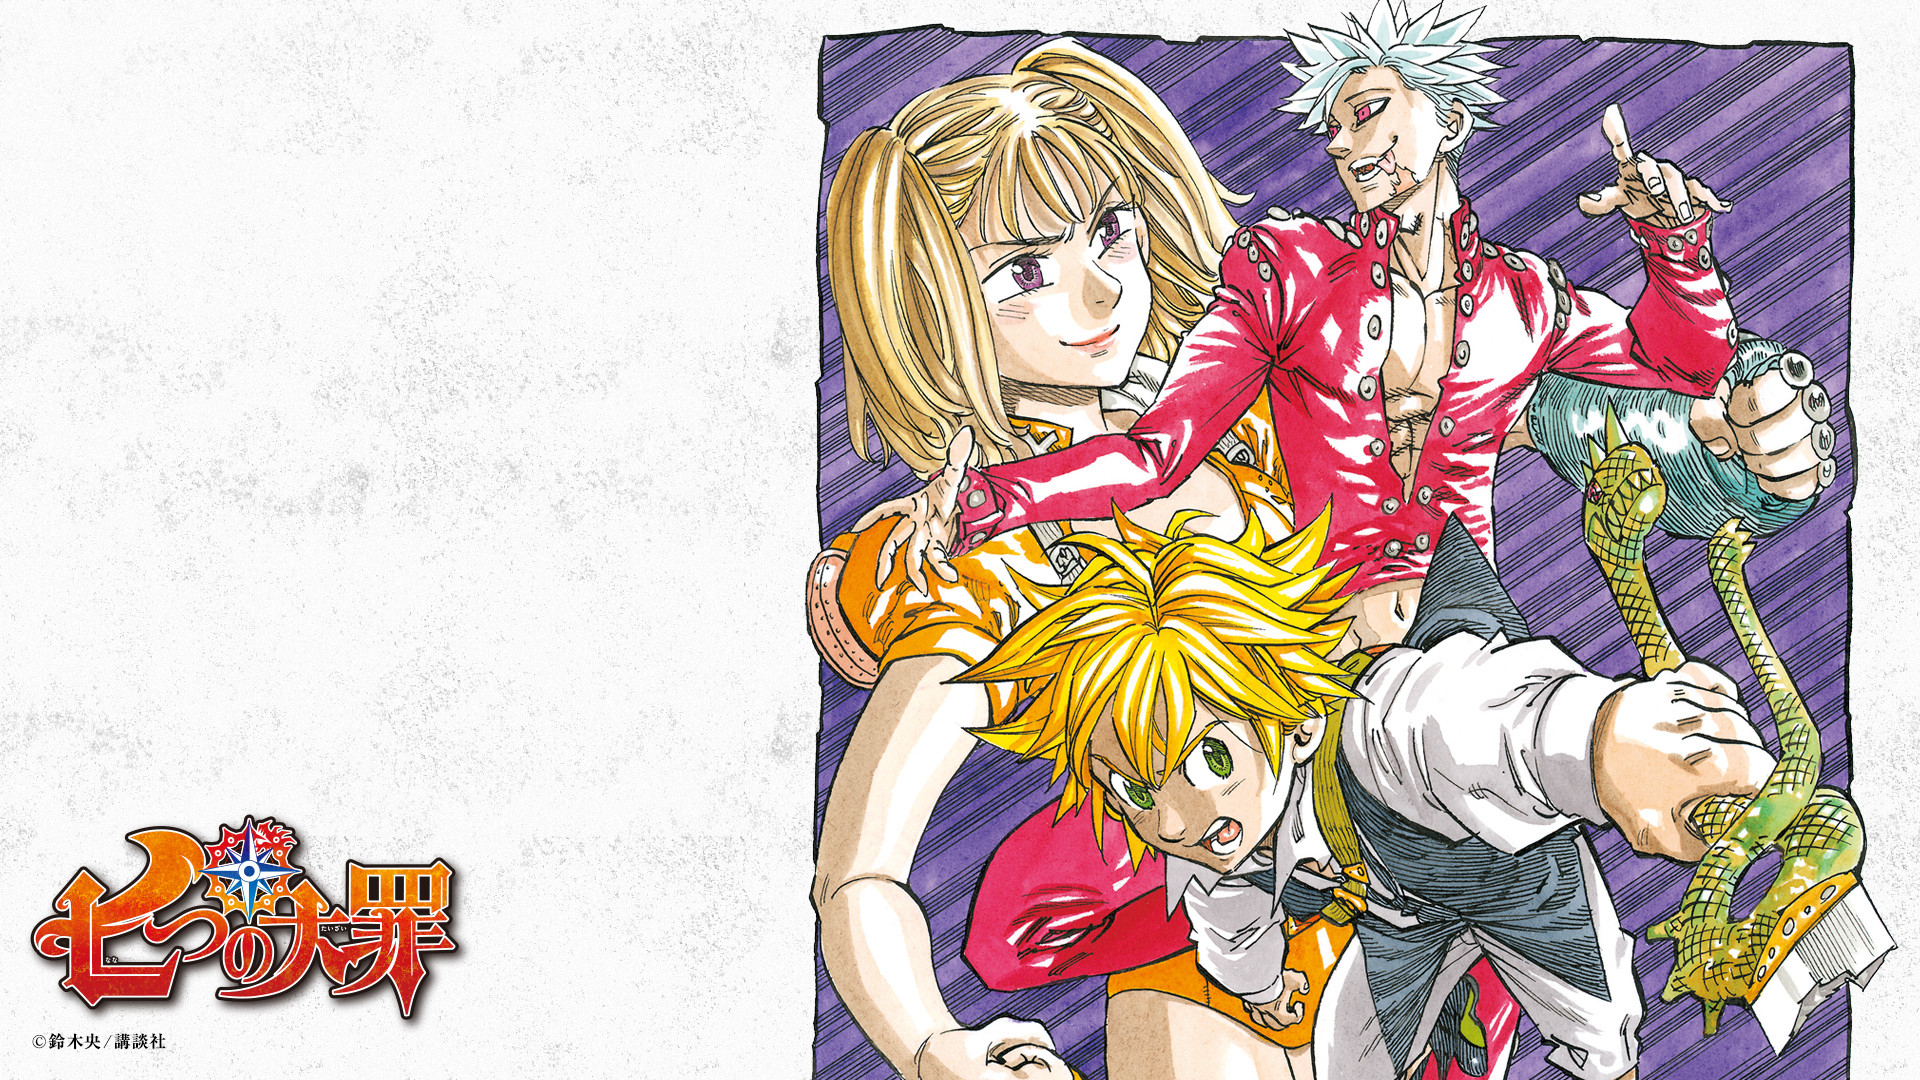 1920x1080 Image - Wallpaper 2.png | Nanatsu no Taizai Wiki | FANDOM powered by Wikia